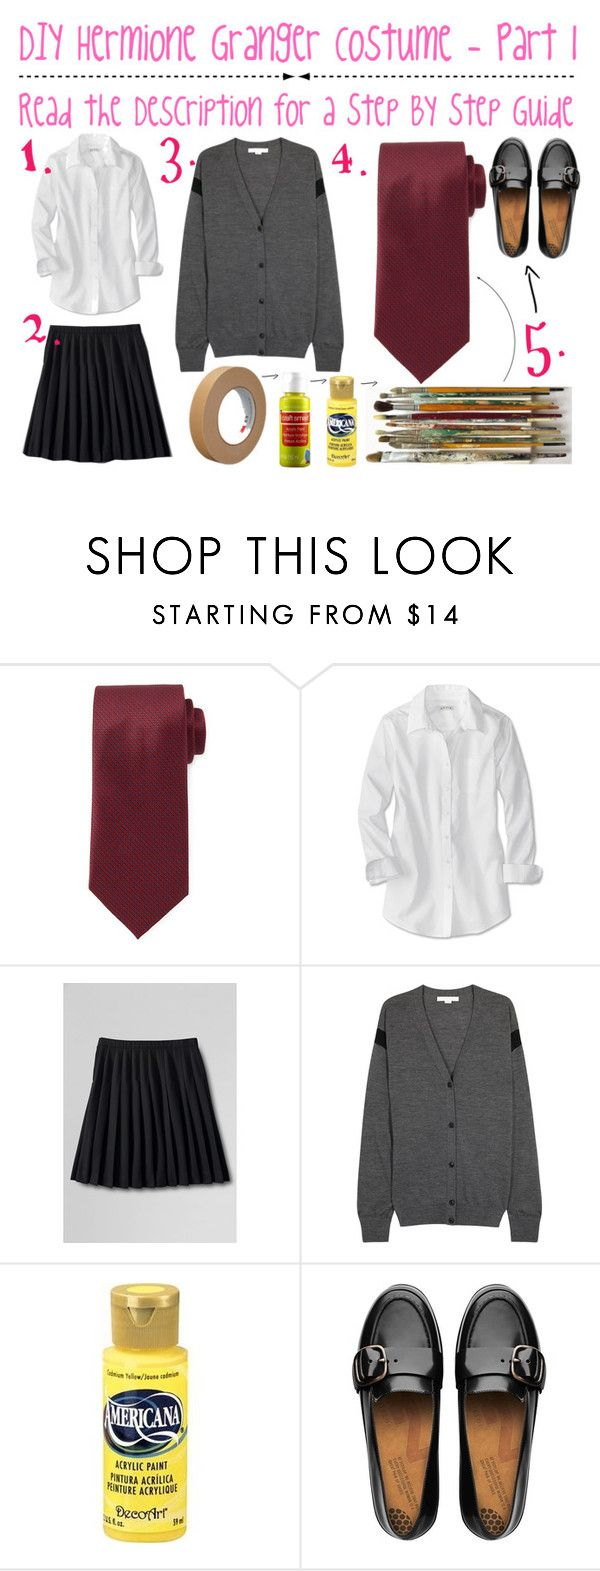 """""""Hermione Granger - DIY Costume - Part 1"""" by anushajean13 ❤ liked on Polyvore featuring Brioni, Lands' End, Alexander Wang, FitFlop, harrypotter and halloweenwithanushajean"""